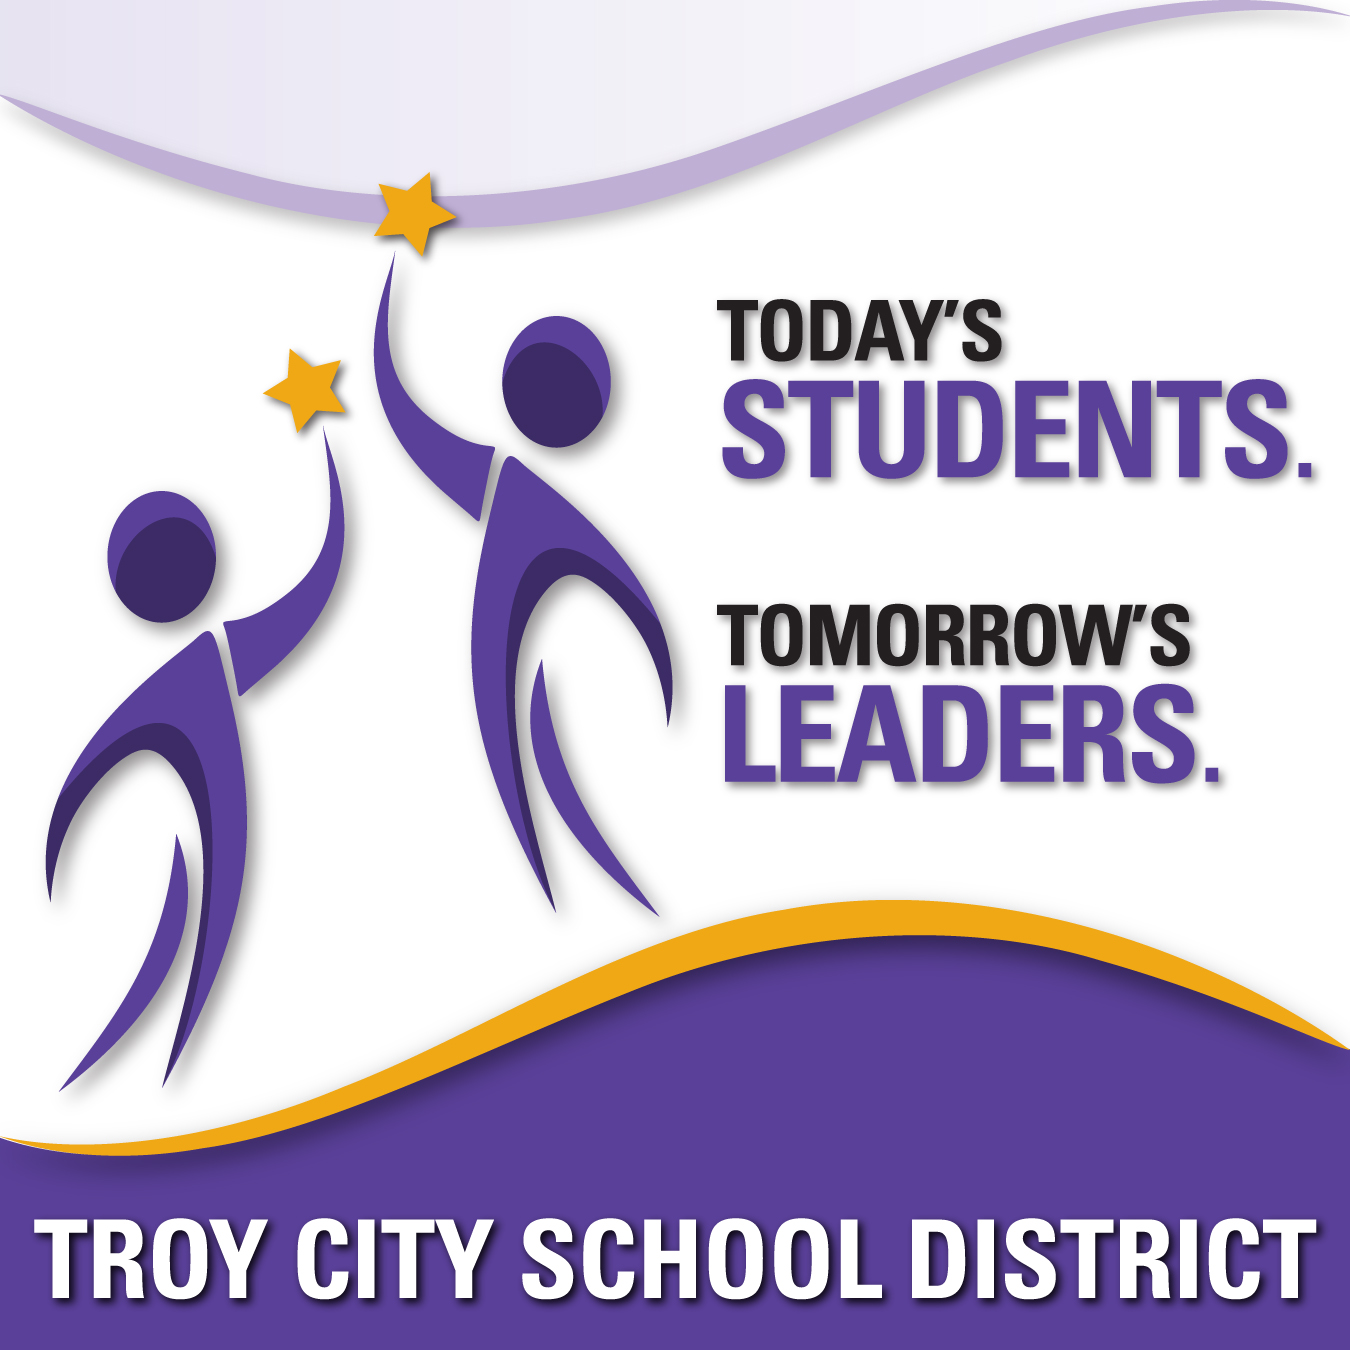 Troy City School District